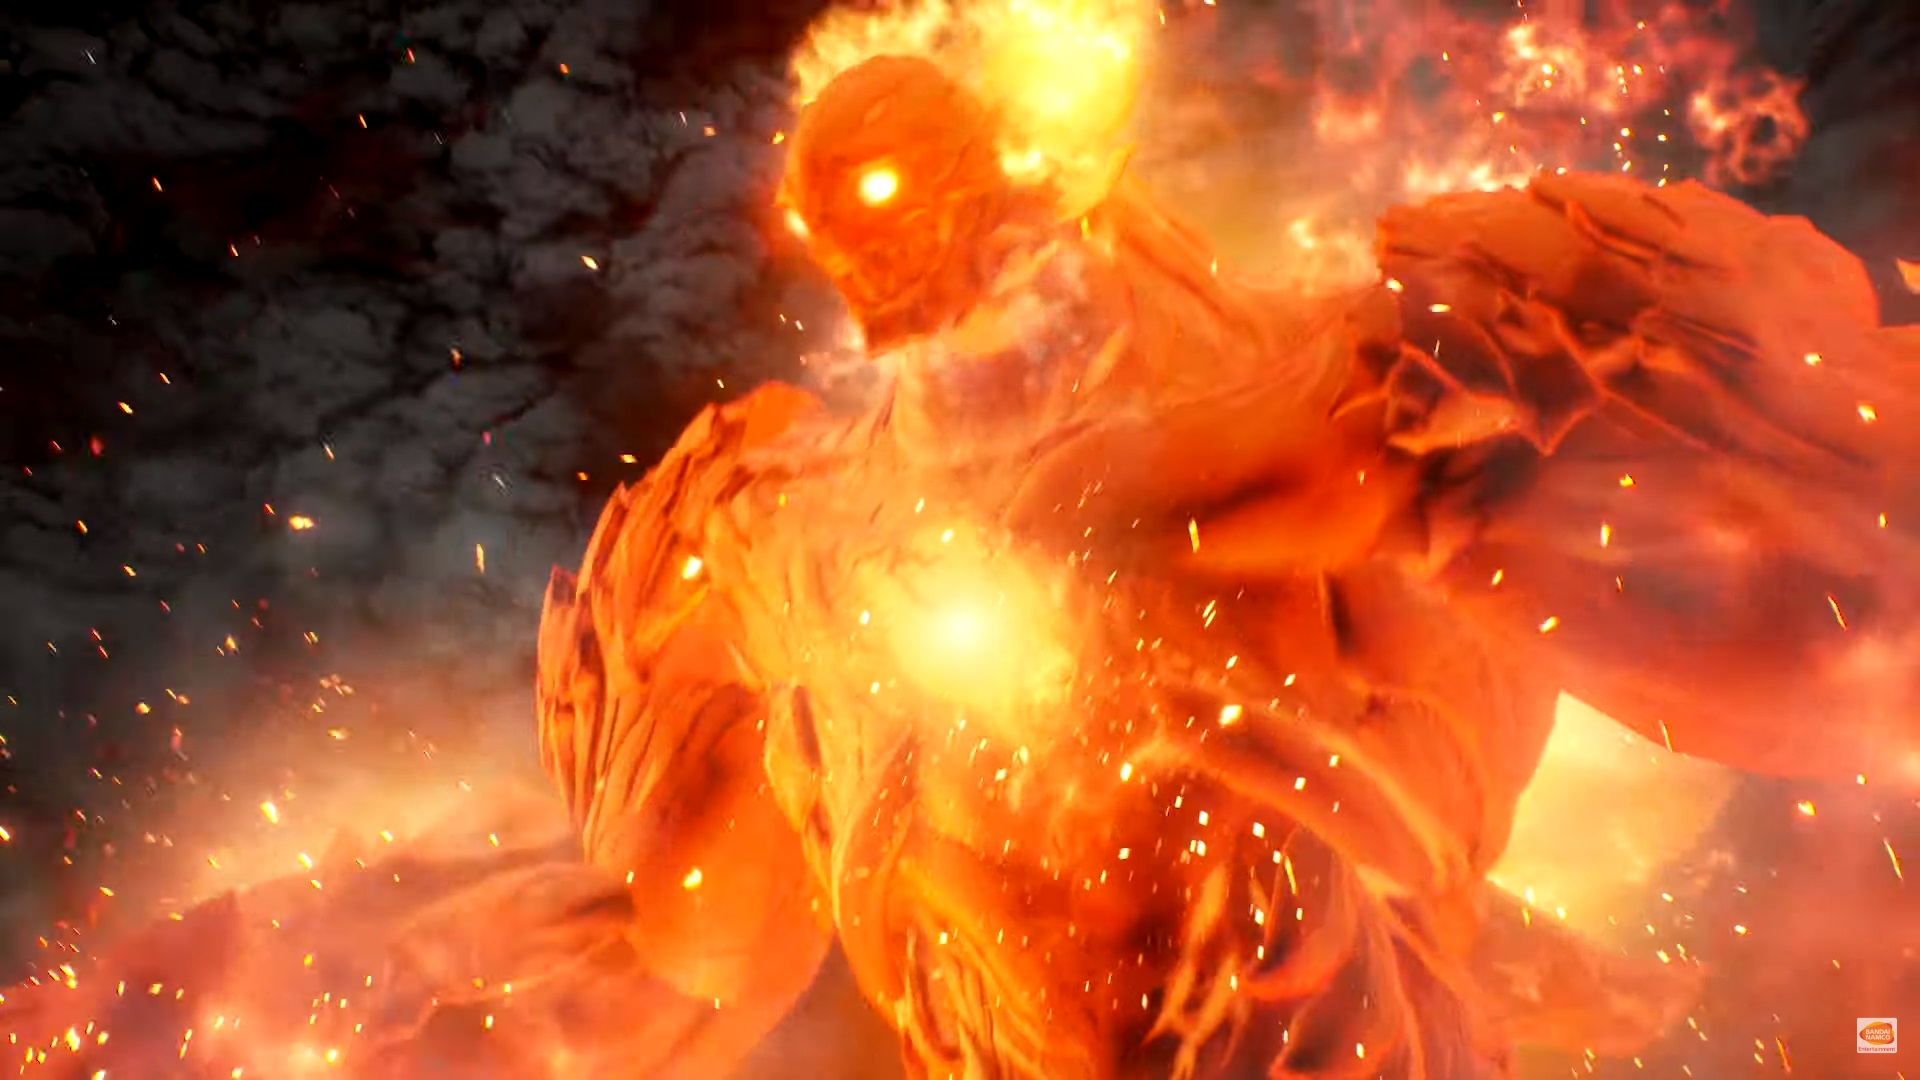 Tales Of Arise looks gorgeous, has a big flaming stompy thing in it